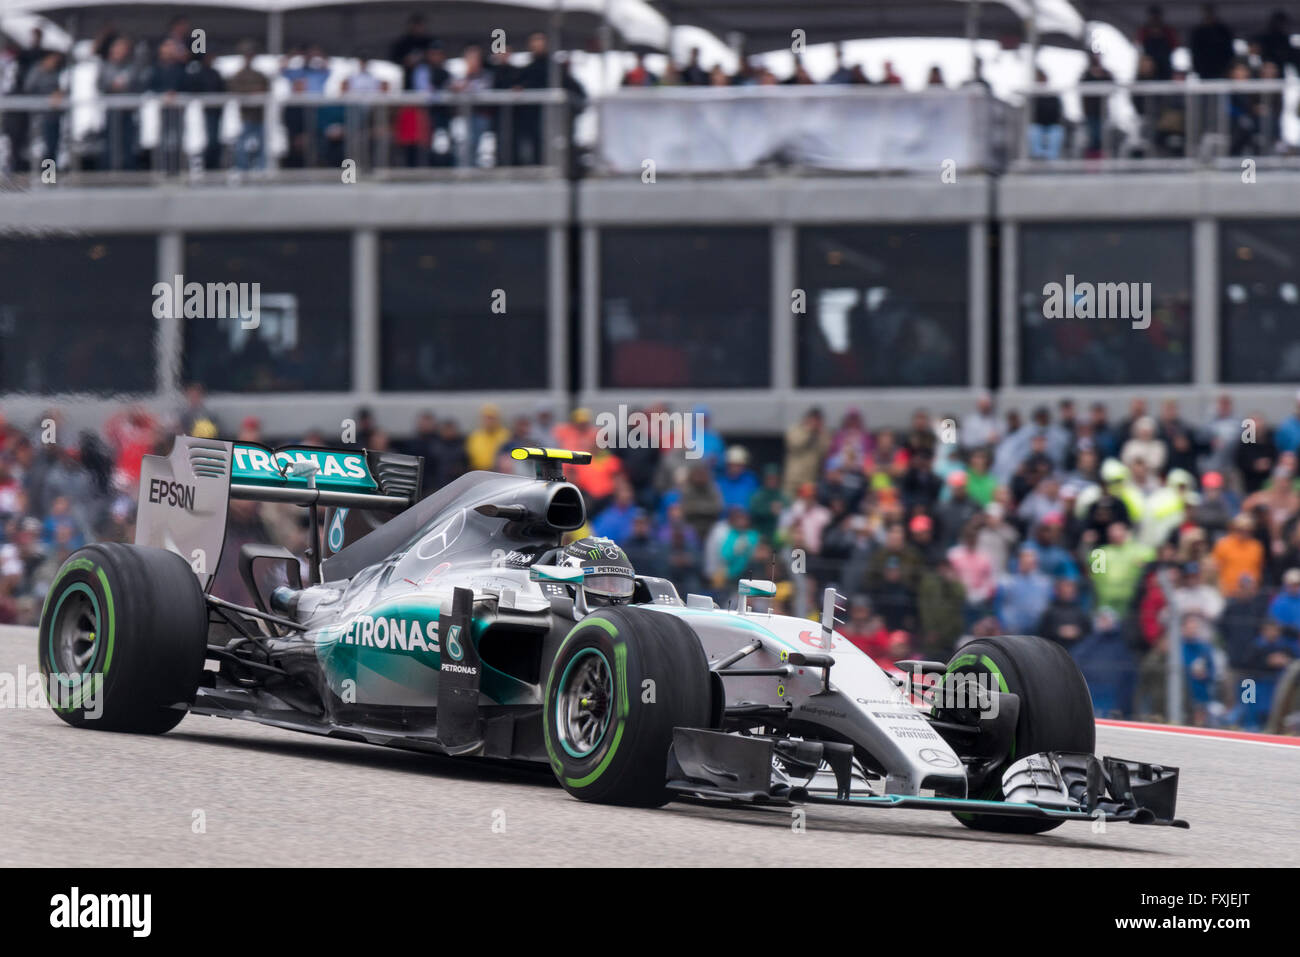 Nico Rosberg of Mercedes AMG Petronas seen during the 2015 United States Formula 1 Grand Prix at Circuit of the Stock Photo